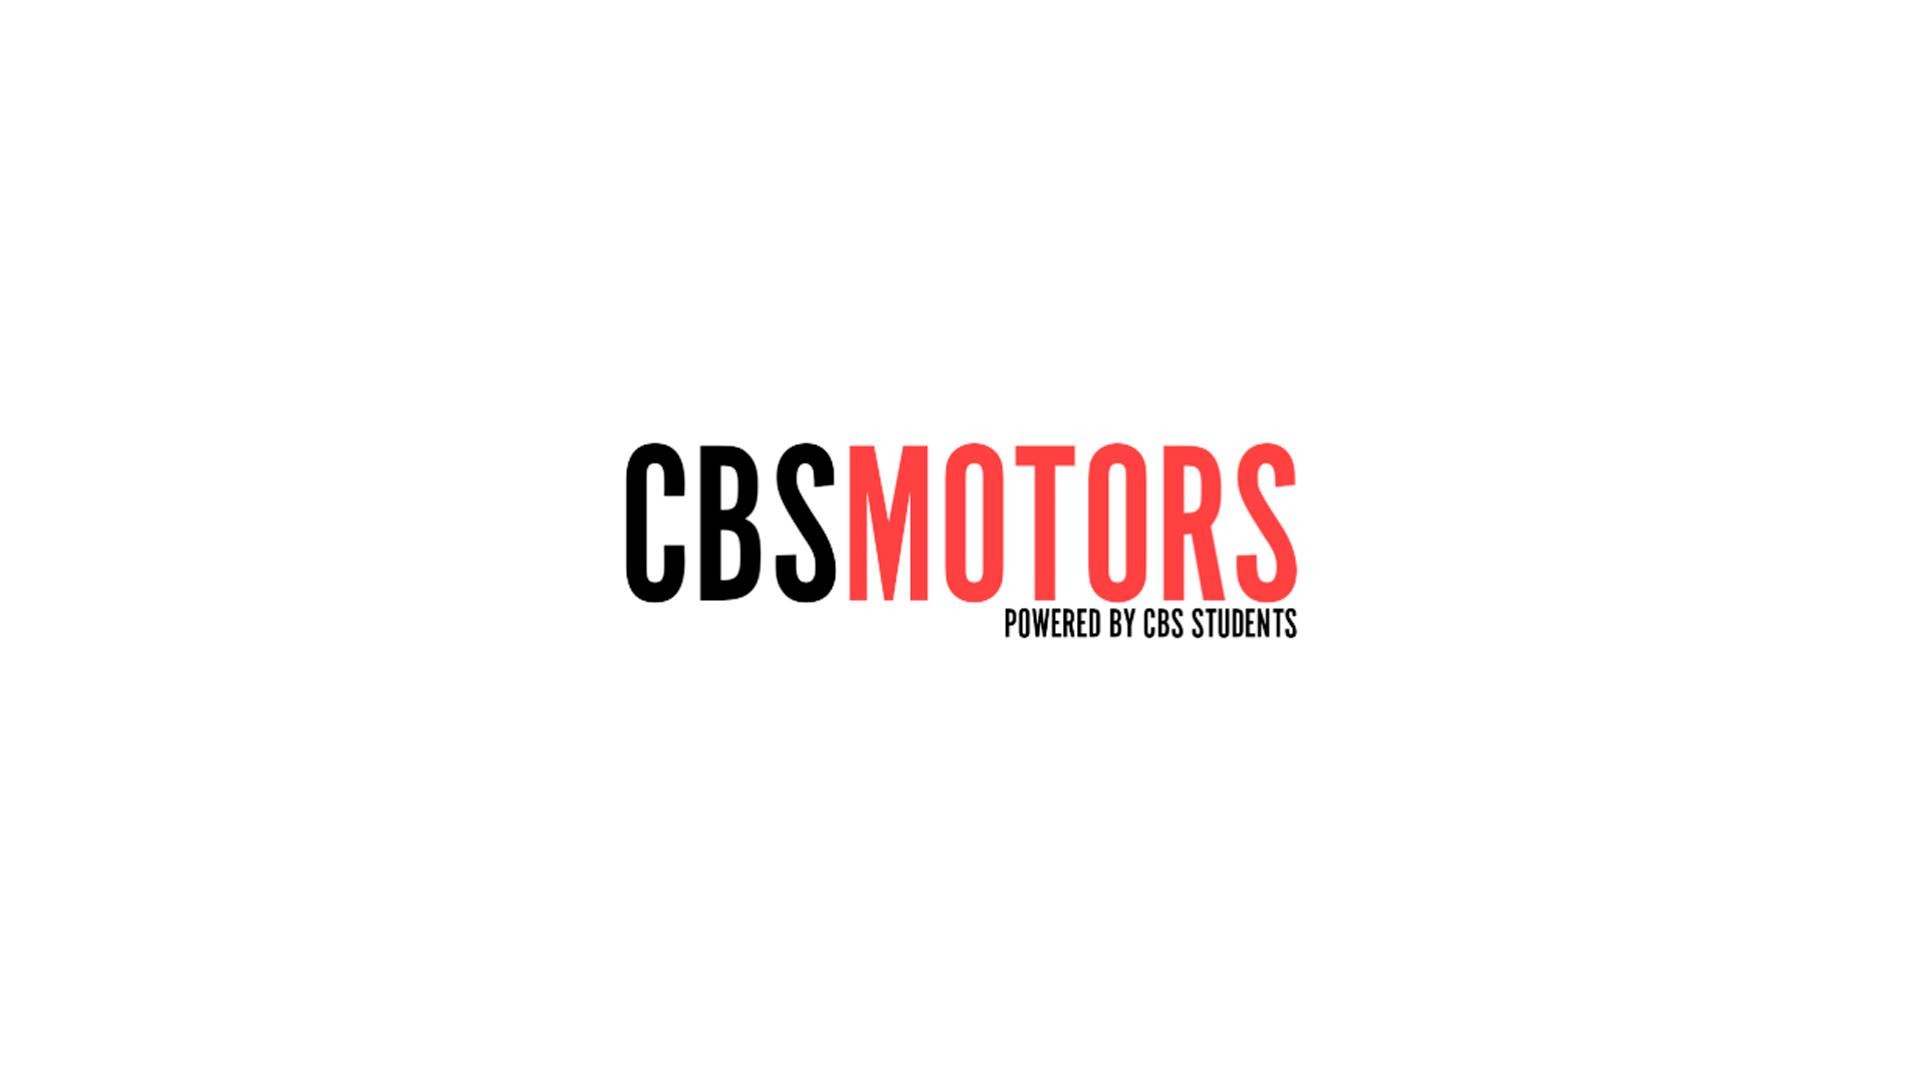 Get in touch - Email: cbsmotors@gutsi.dkFacebookStudent citizenship guidelines